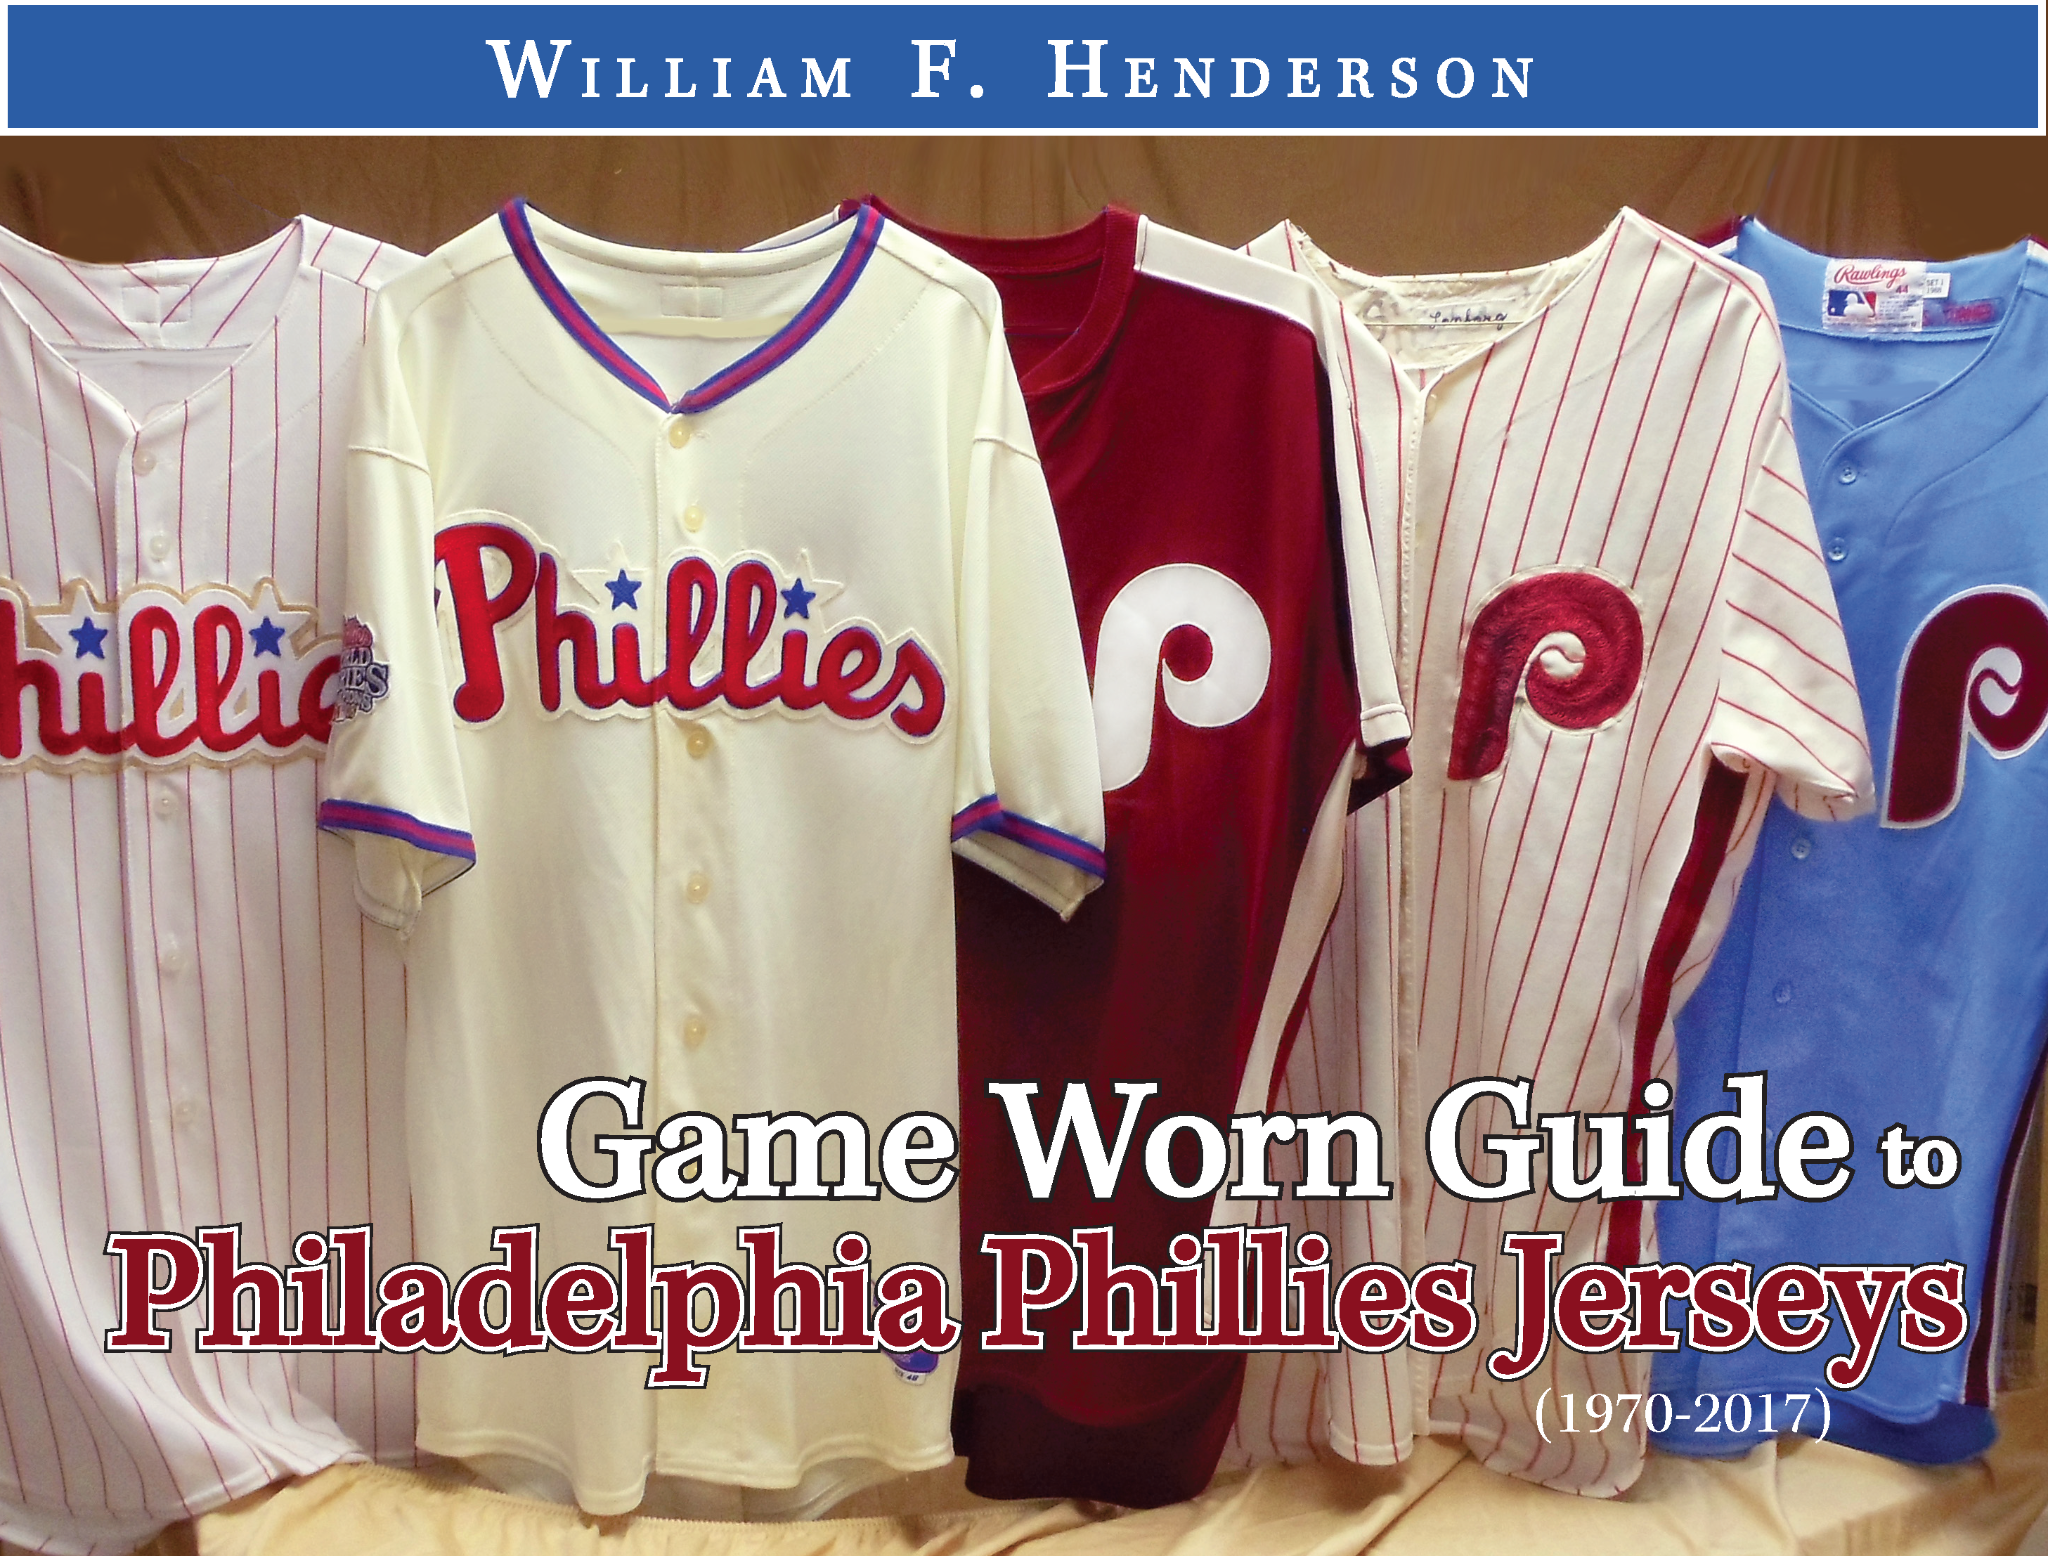 Game Worn Guide to Philadelphia Phillies Jerseys (1970-2017)